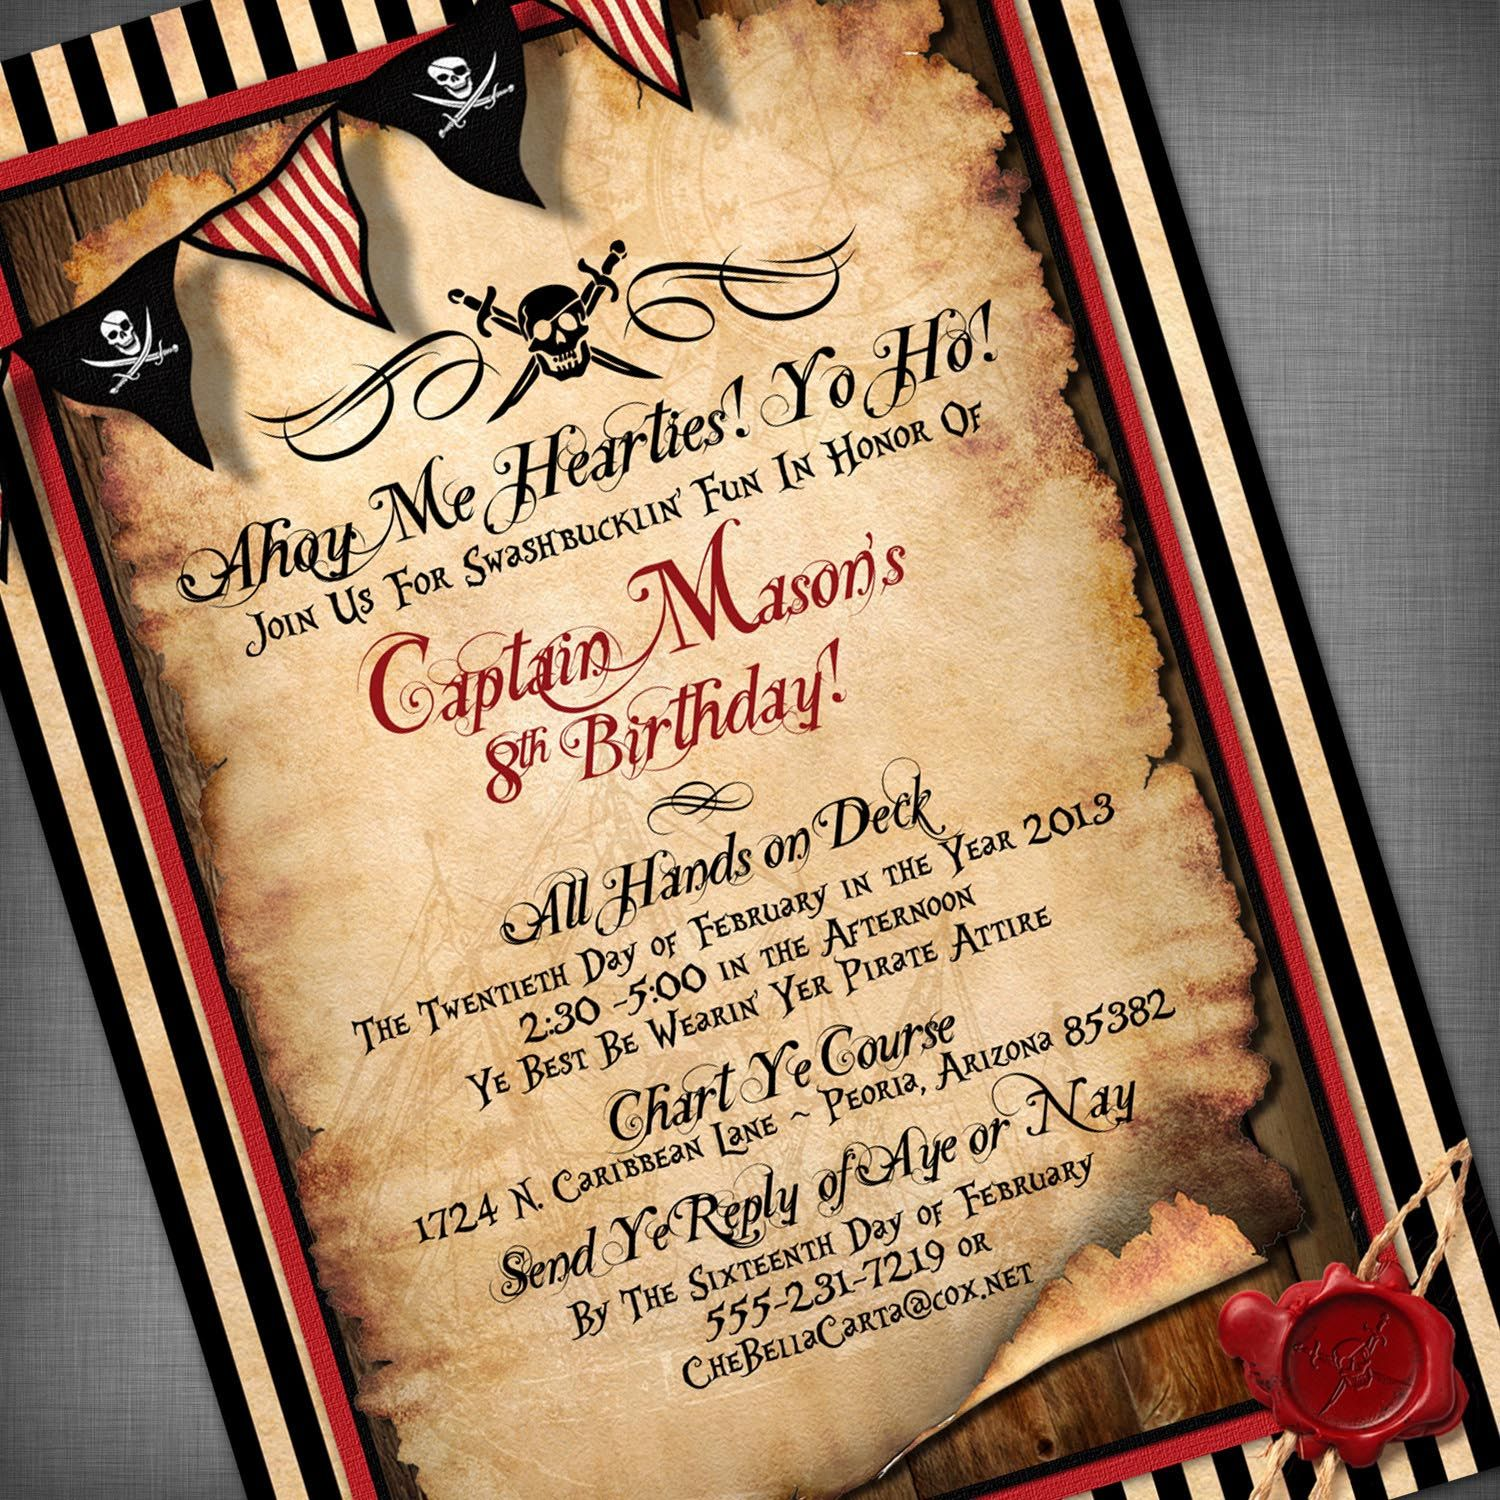 pirate themed birthday party invitation ideas ; 7c5be21fd8ef9720c8f8262ecb5c4a73